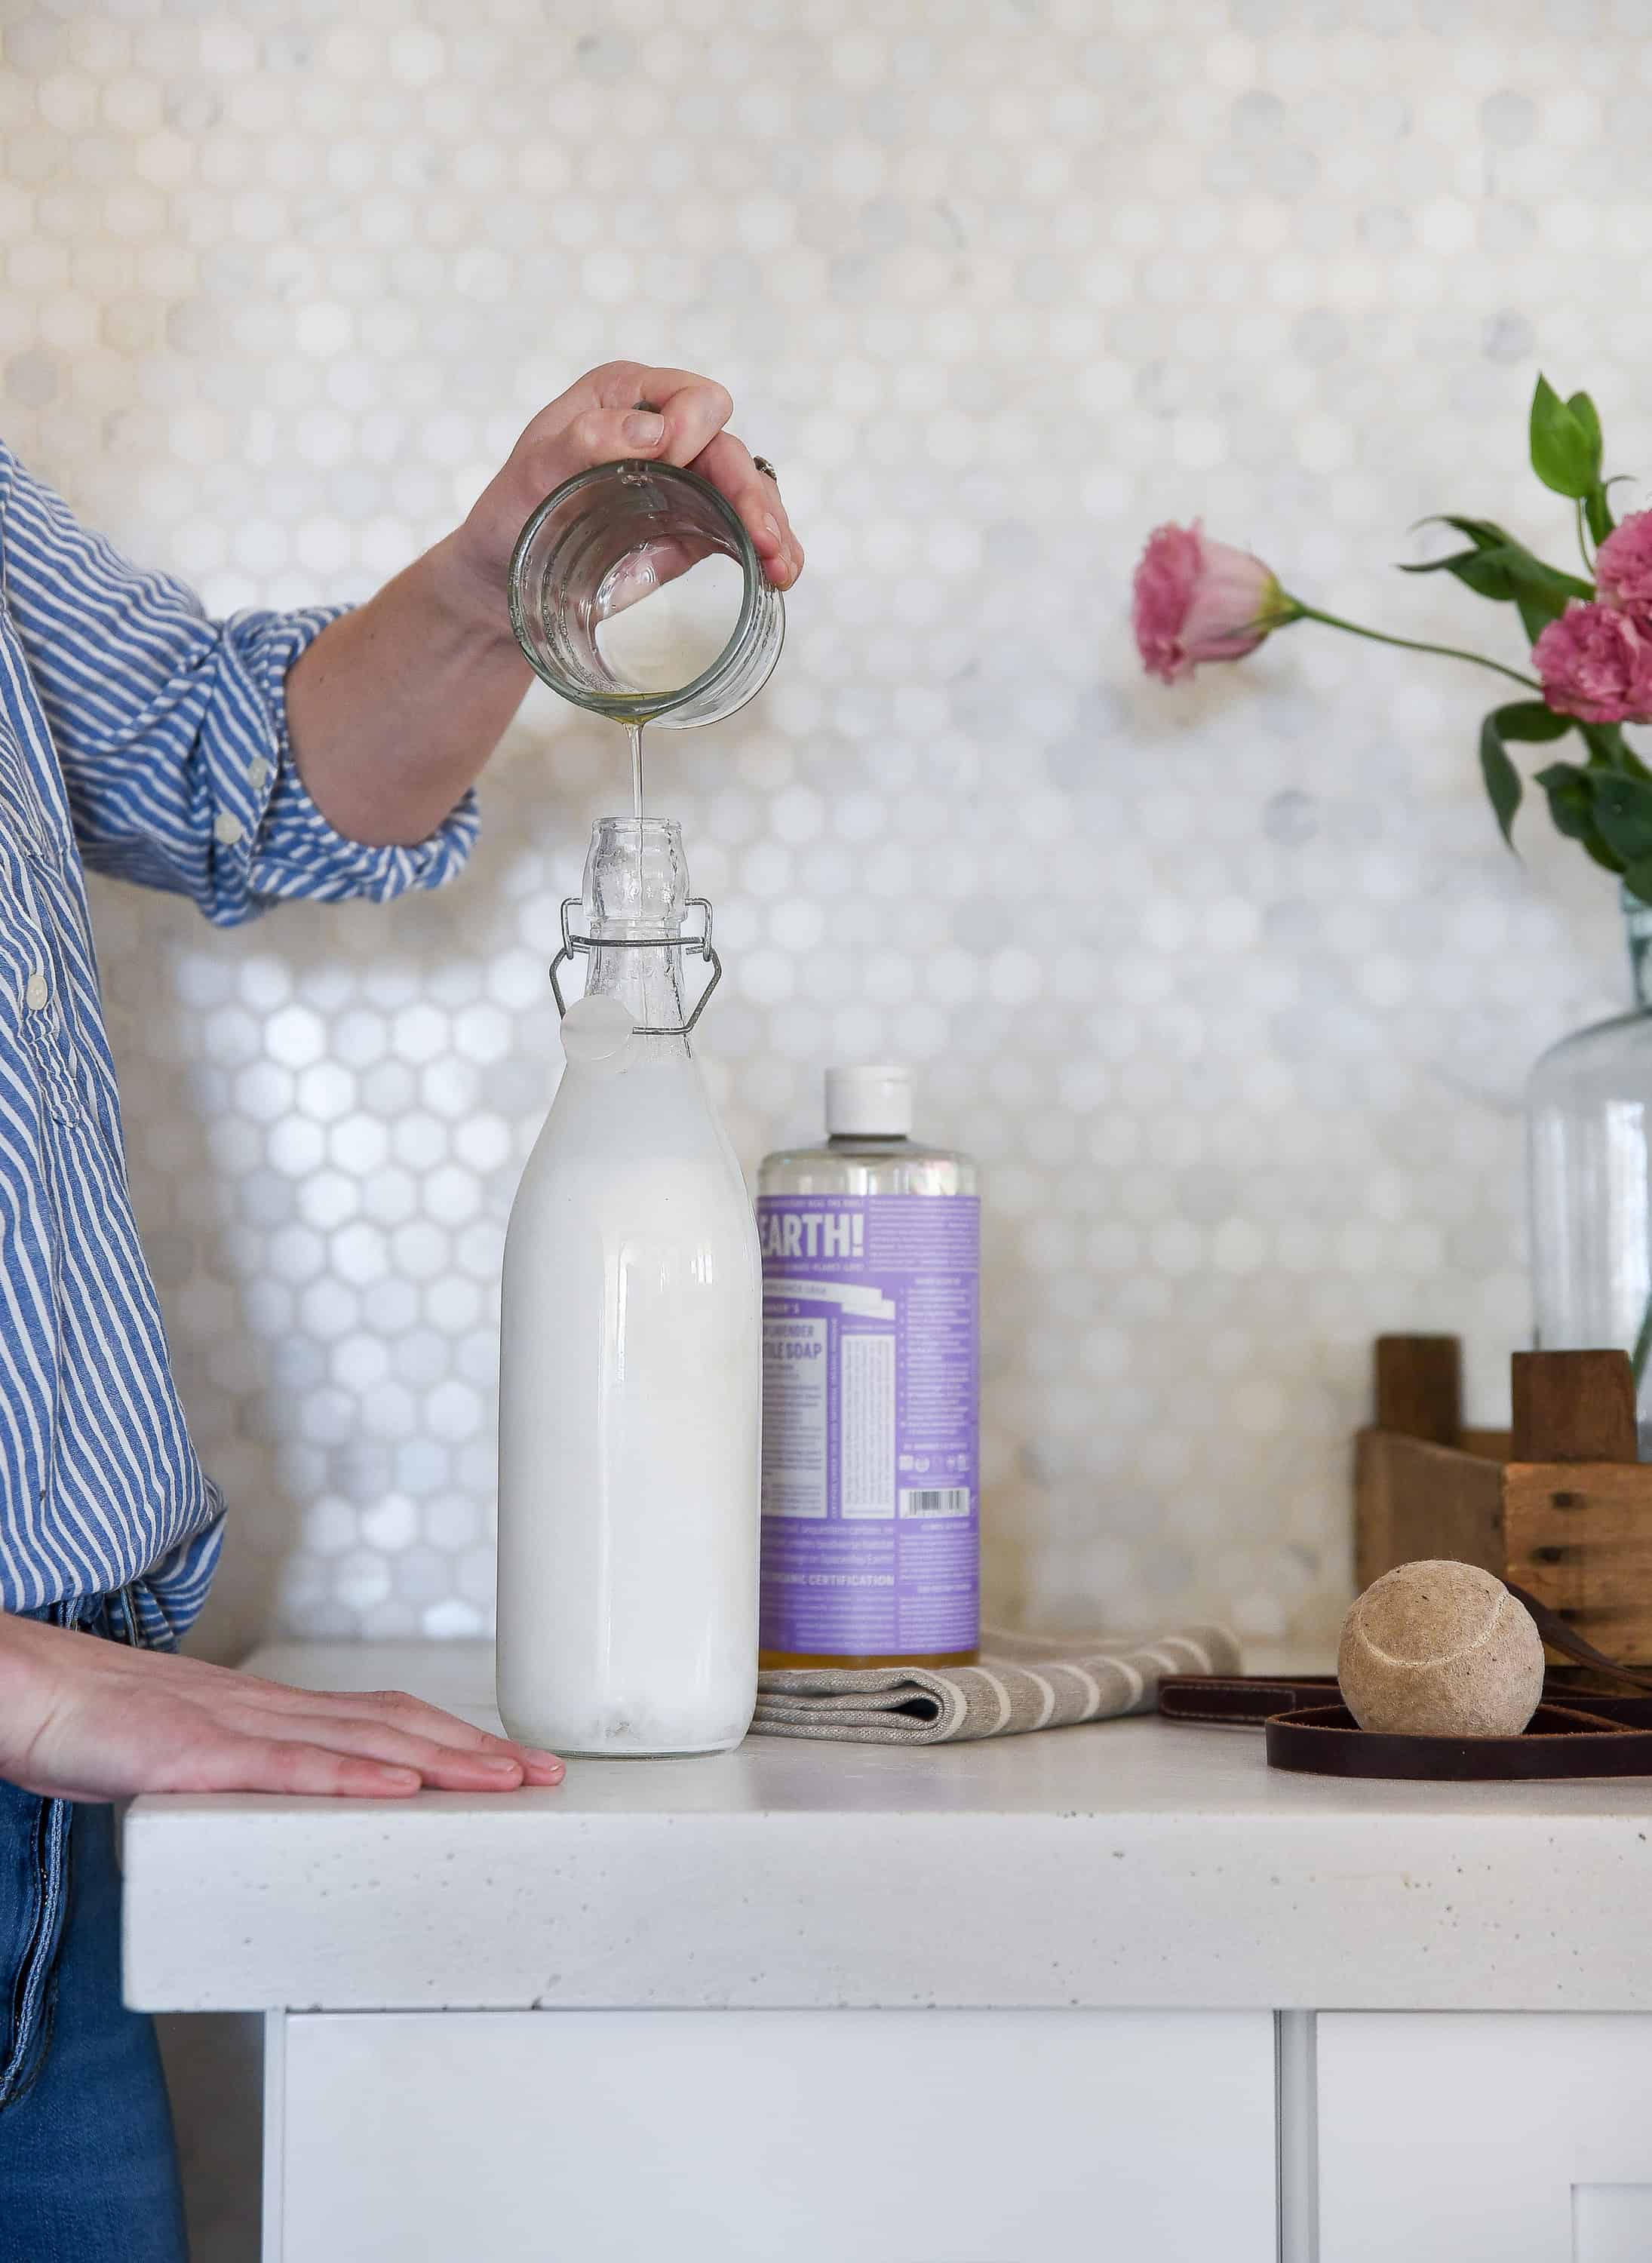 Castile soap is one of the oldest known soaps, yet continues to innovate the way we clean our homes today! You can use this simple all-natural soap to clean nearly anything in your home!